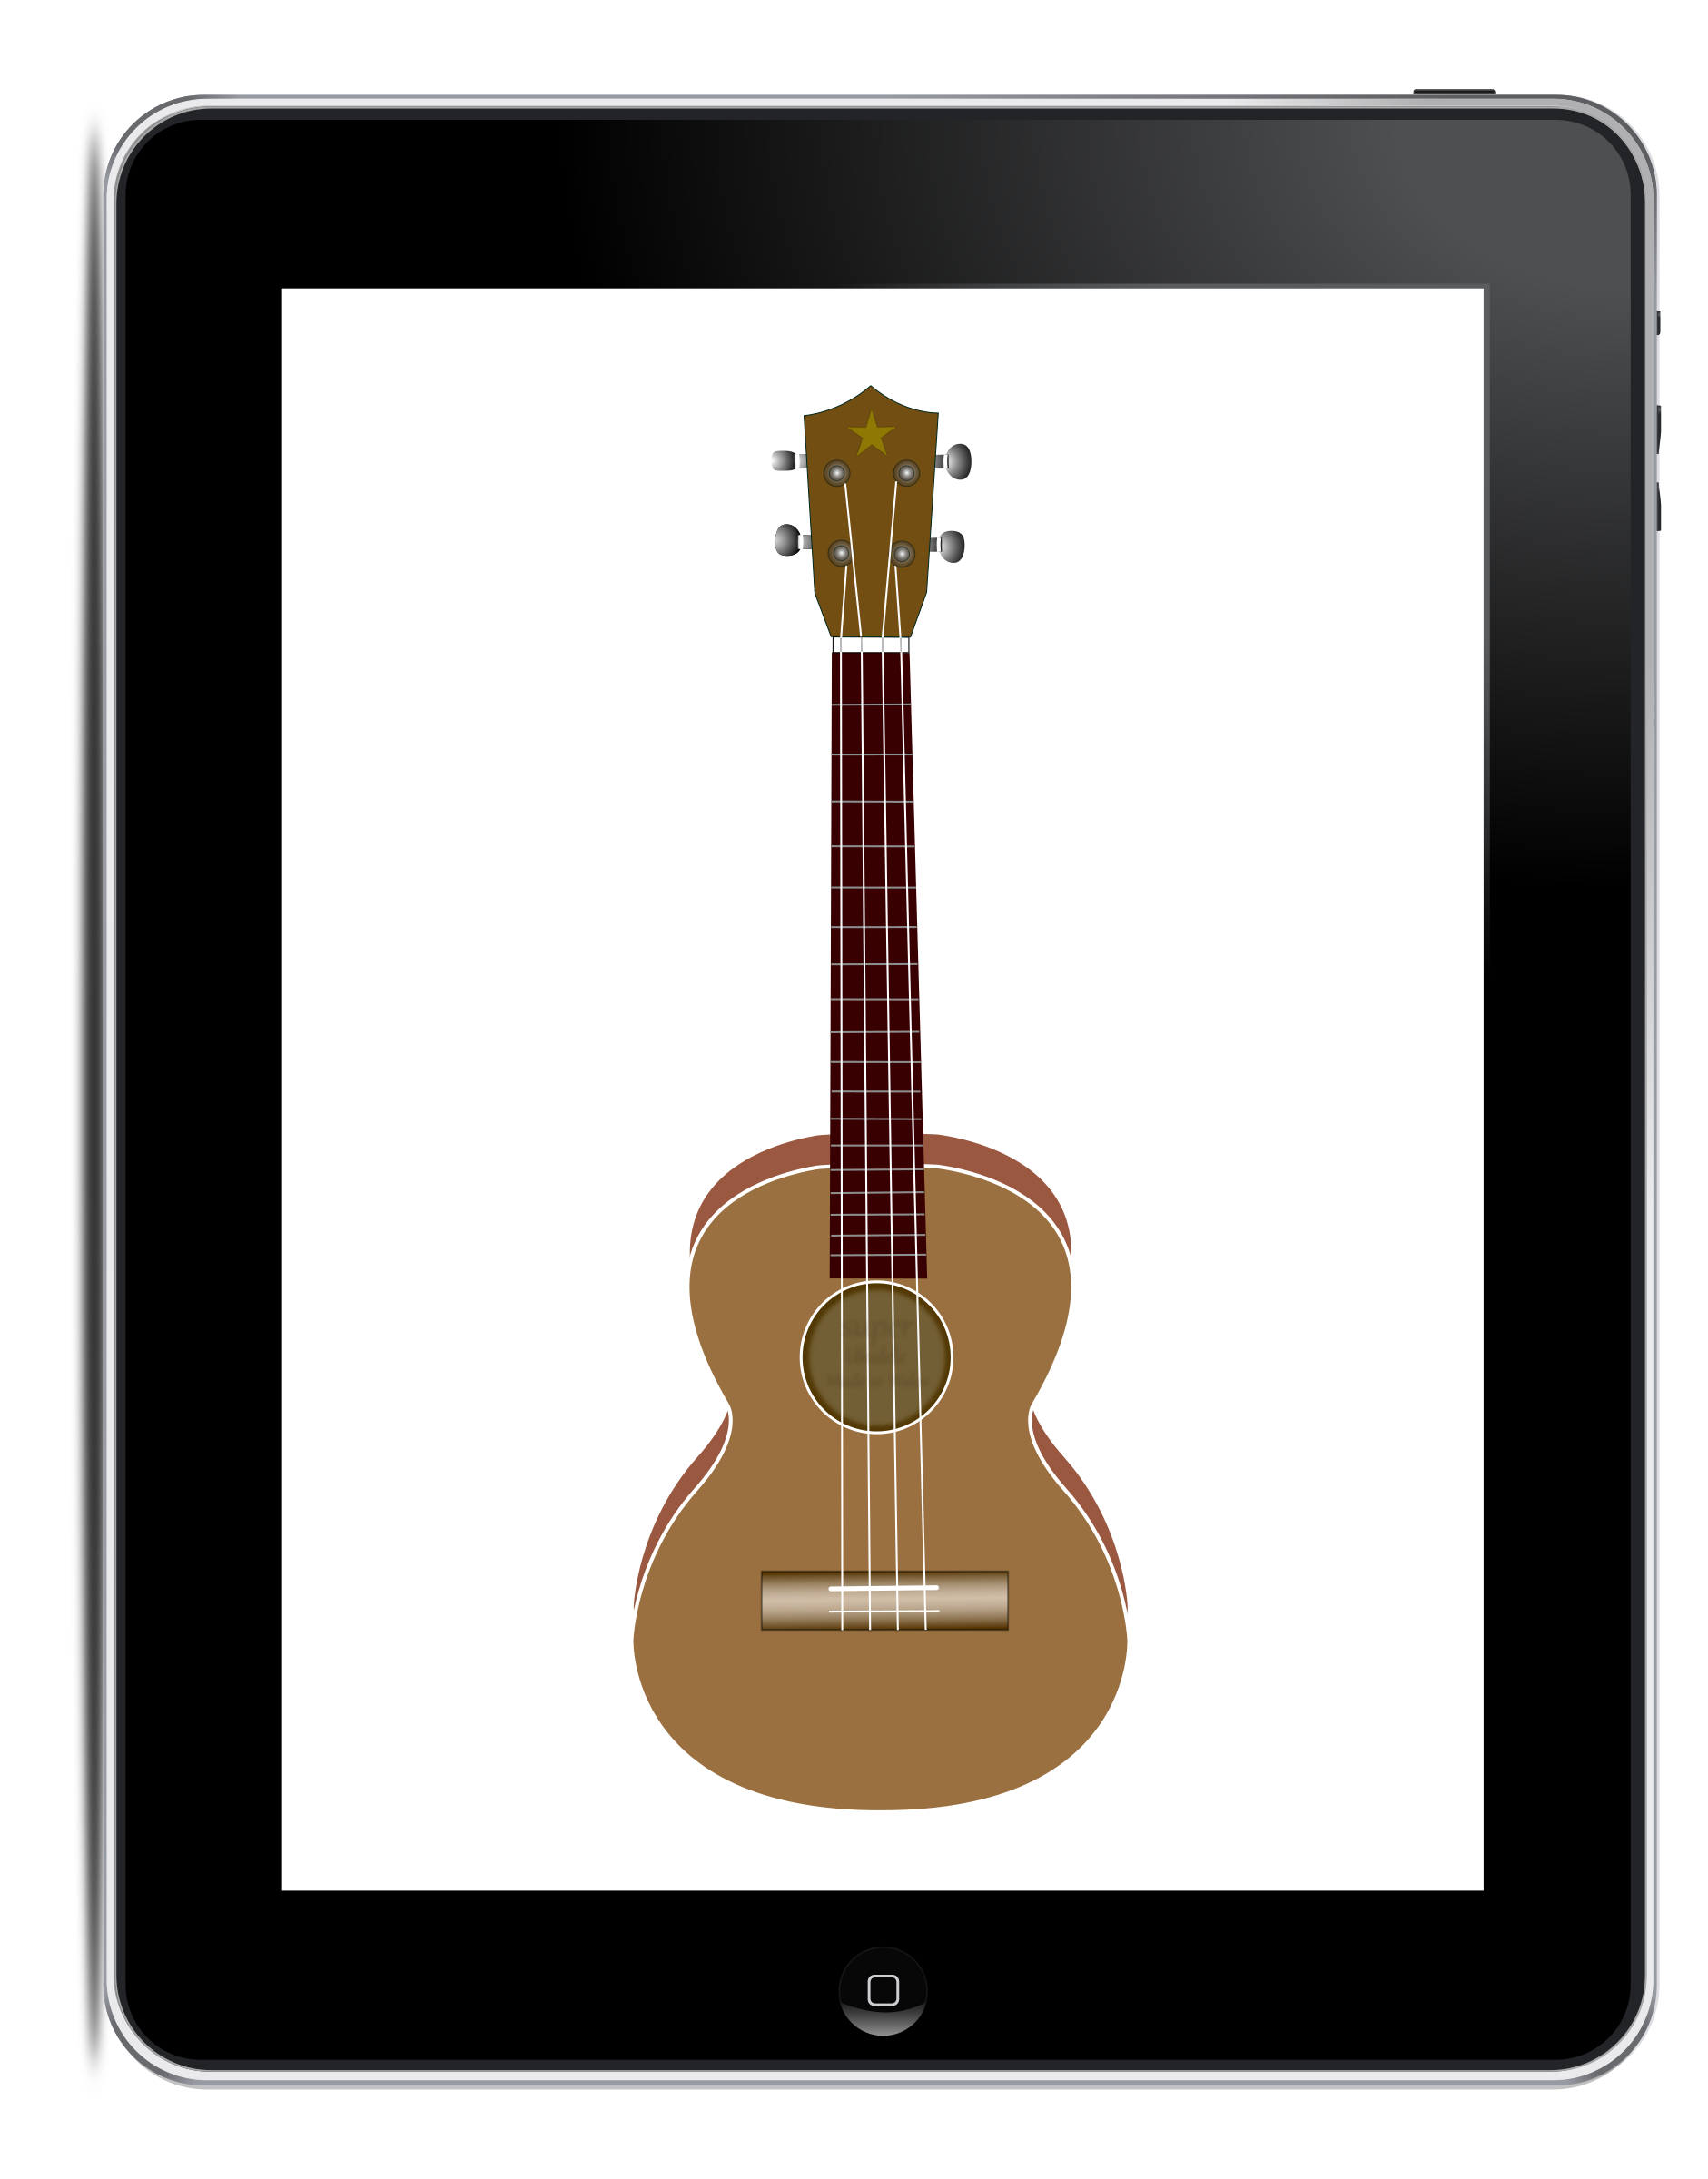 Apple ipad tablet clipart image free library Clipart - Play with Openclipart on your iPad with Inkpad image free library